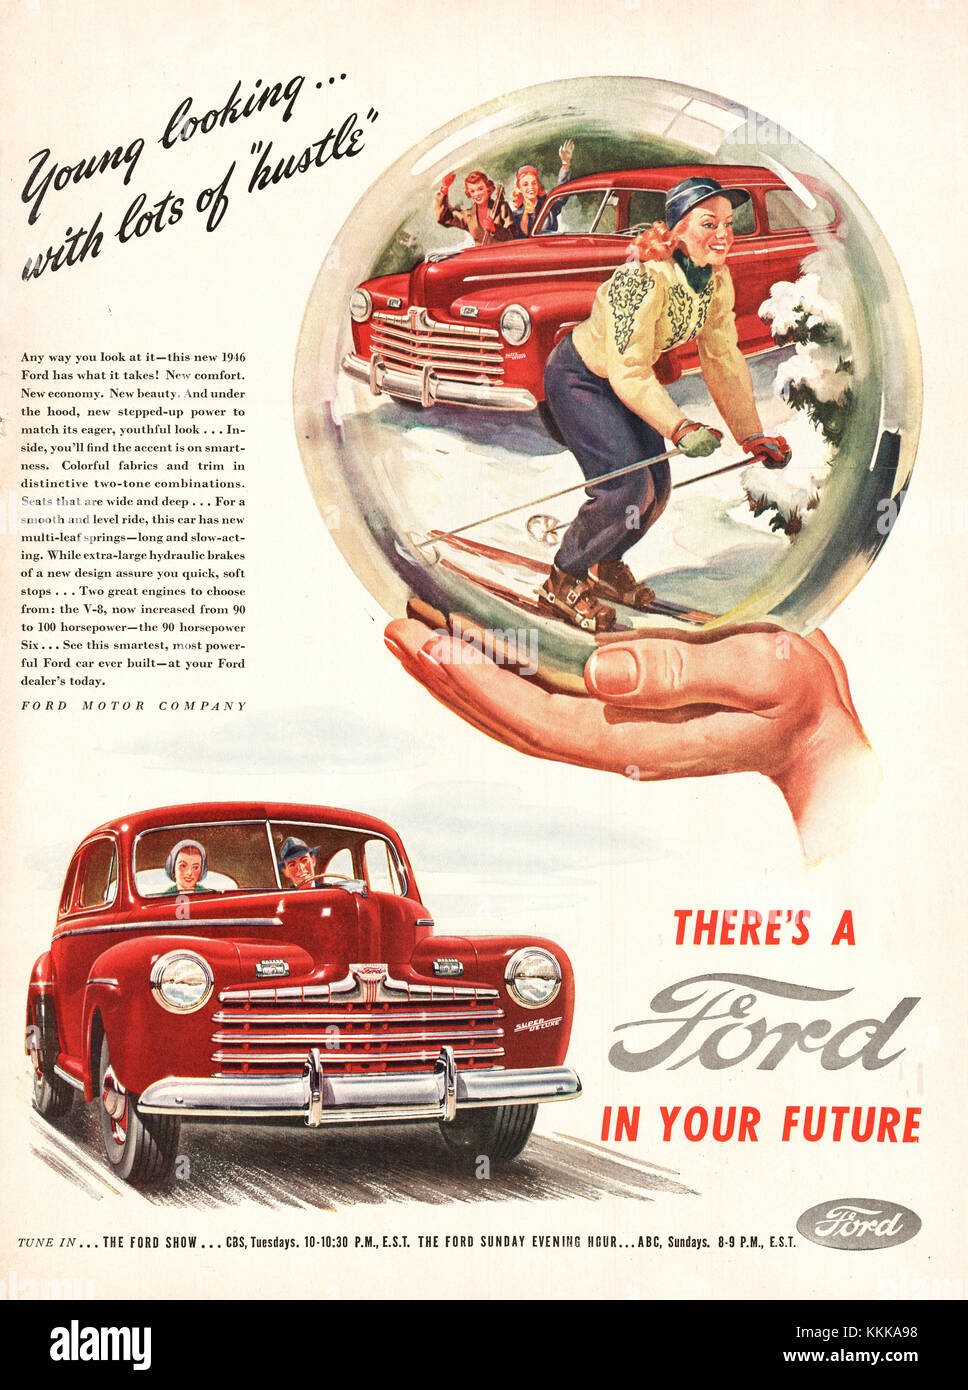 1946 U.S. Magazine Ford Cars Advert Stock Photo: 166996964 - Alamy